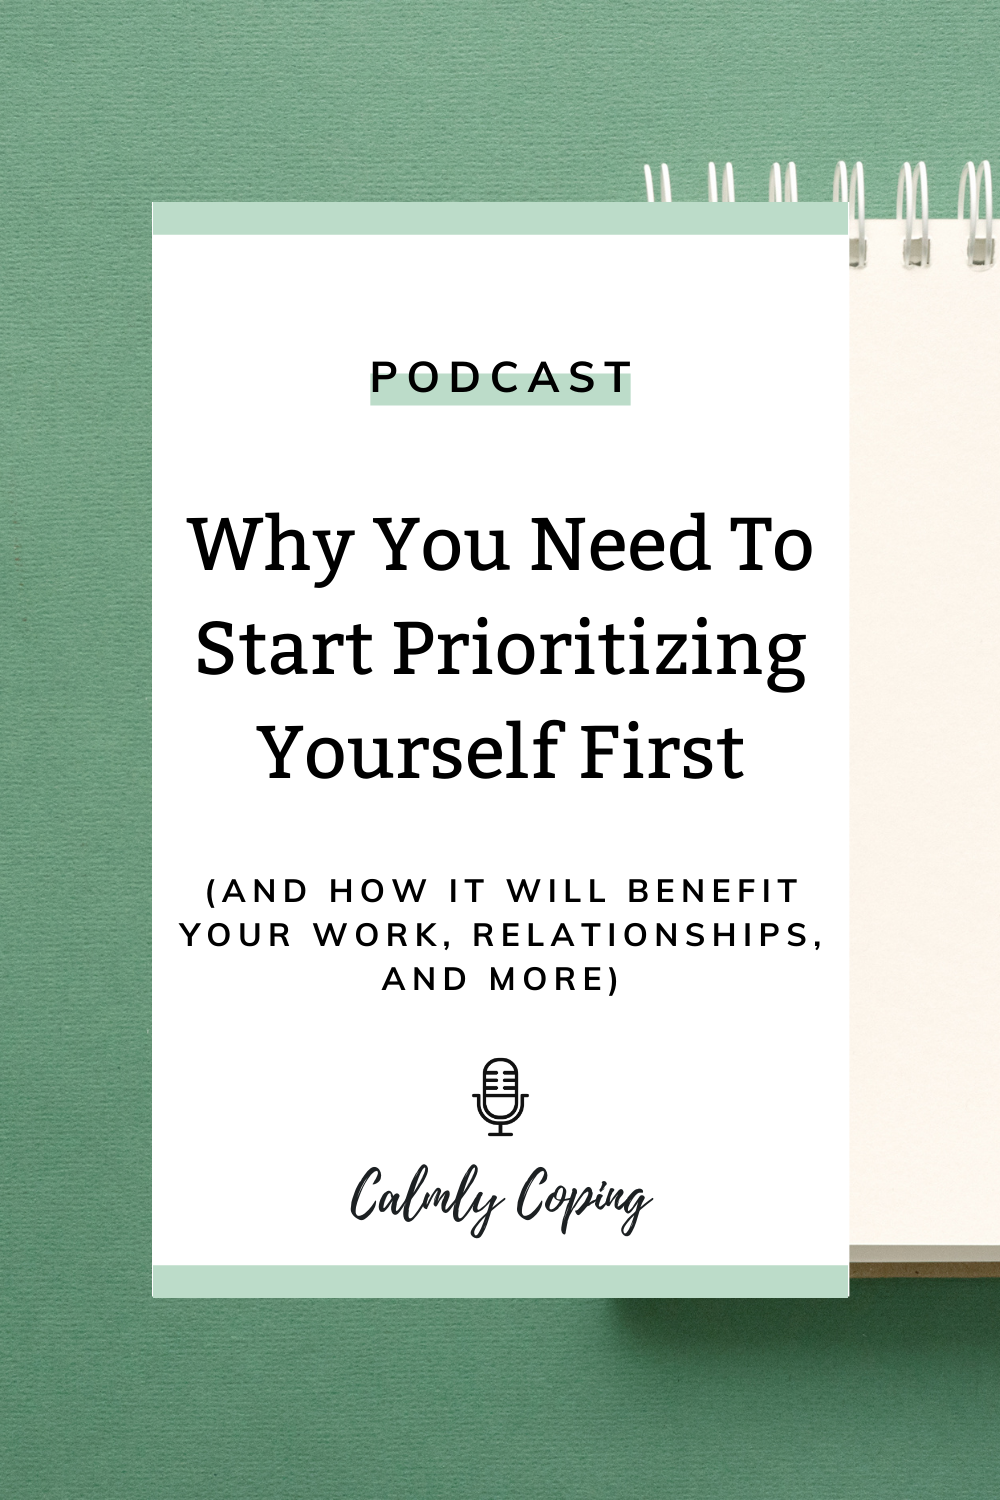 Why You Need To Start Prioritizing Yourself First